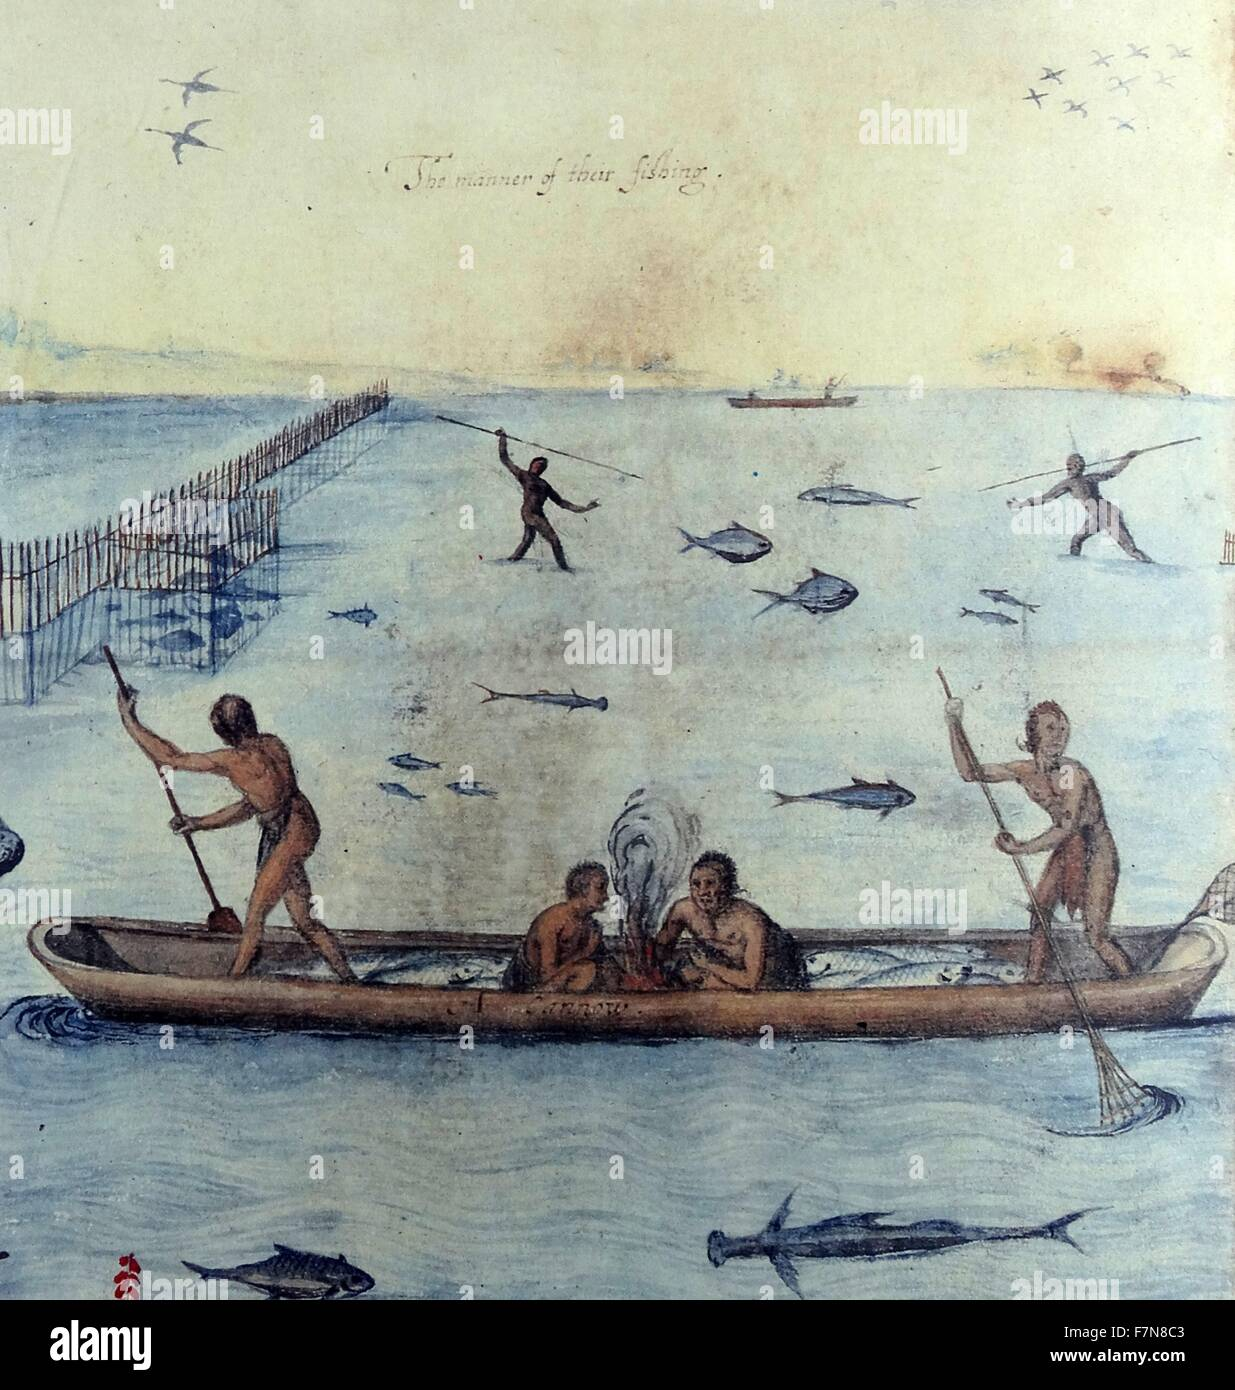 Watercolor drawing 'Indians Fishing' by John White (created 1585-1586). - Stock Image